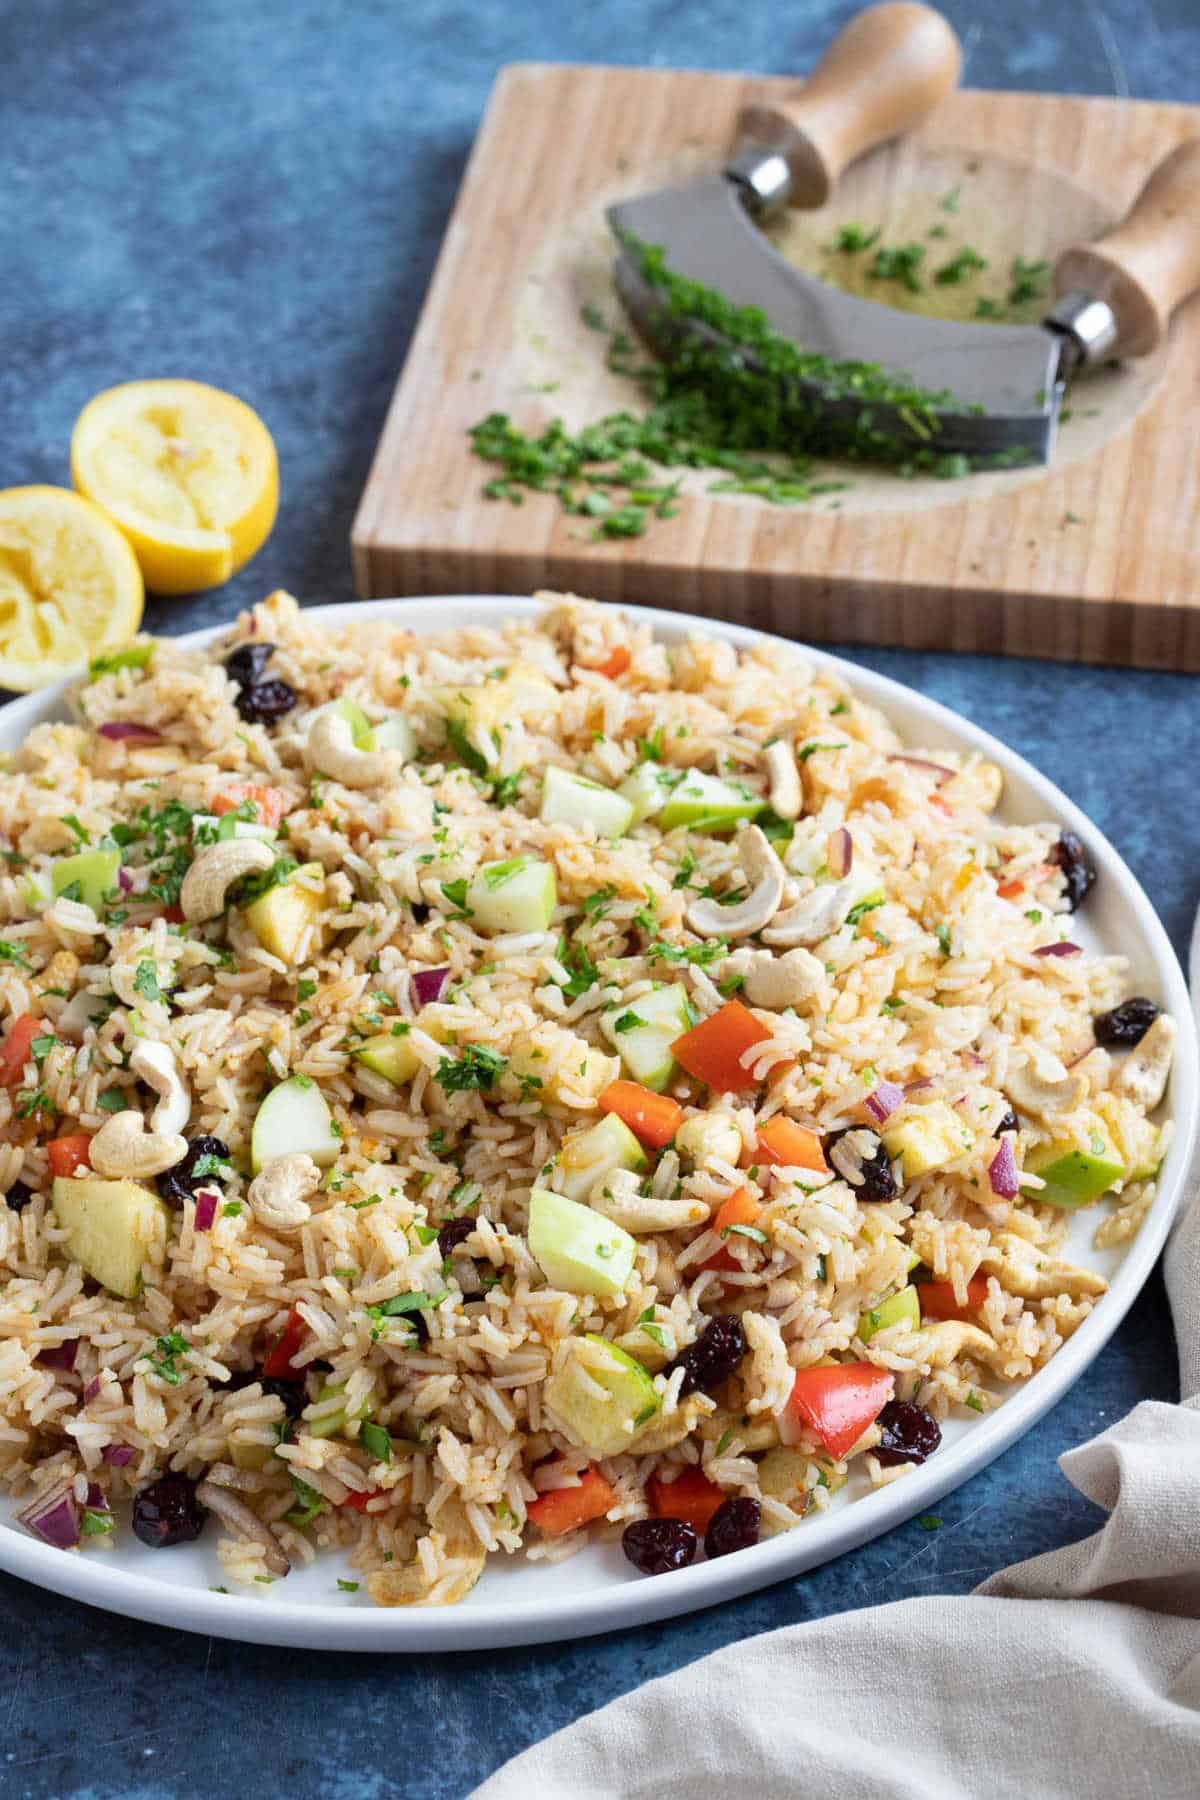 Easy curried rice salad garnished with parsley.